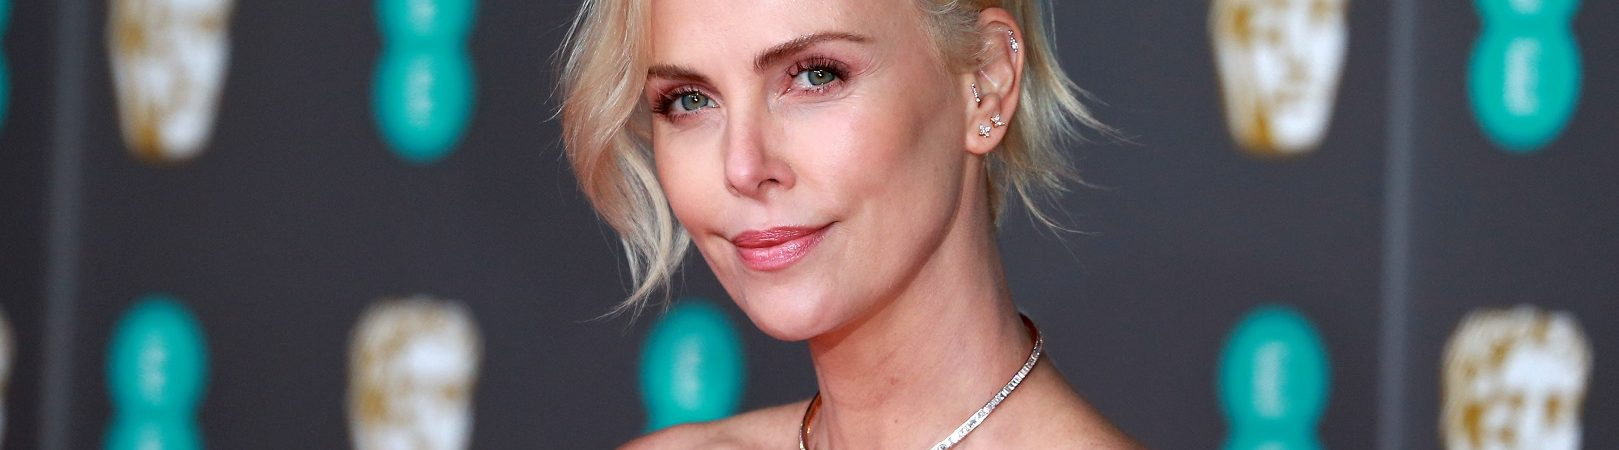 Charlize Theron attends the British Academy Film Awards at the Royal Albert Hall in London, UK. Image: Cubankite/Shuttestock